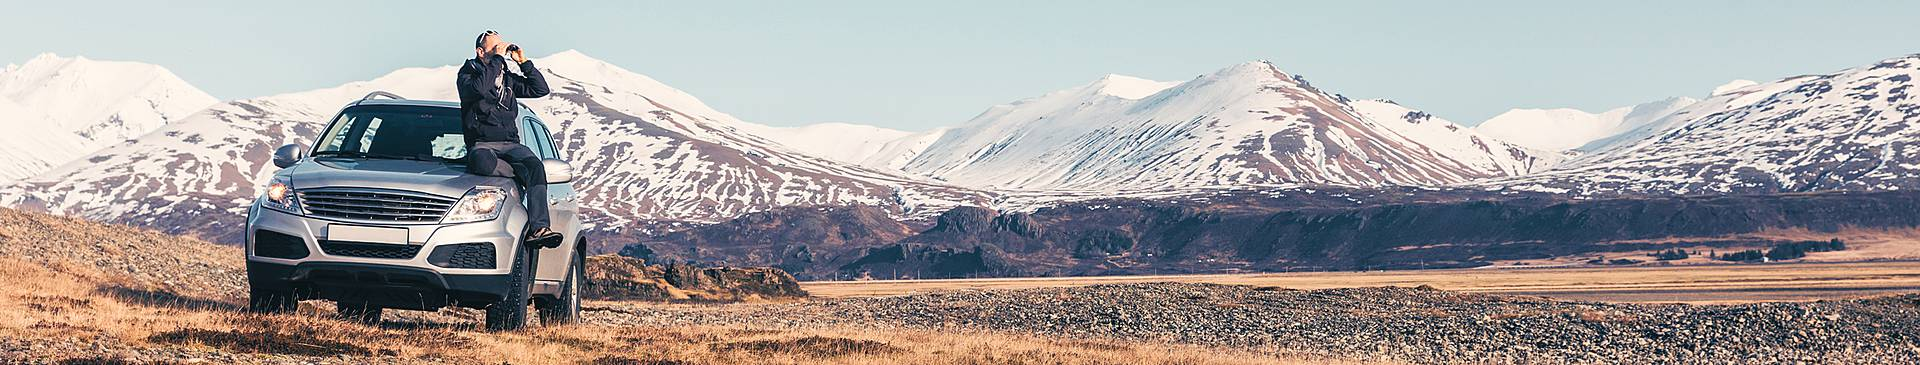 Iceland road trips